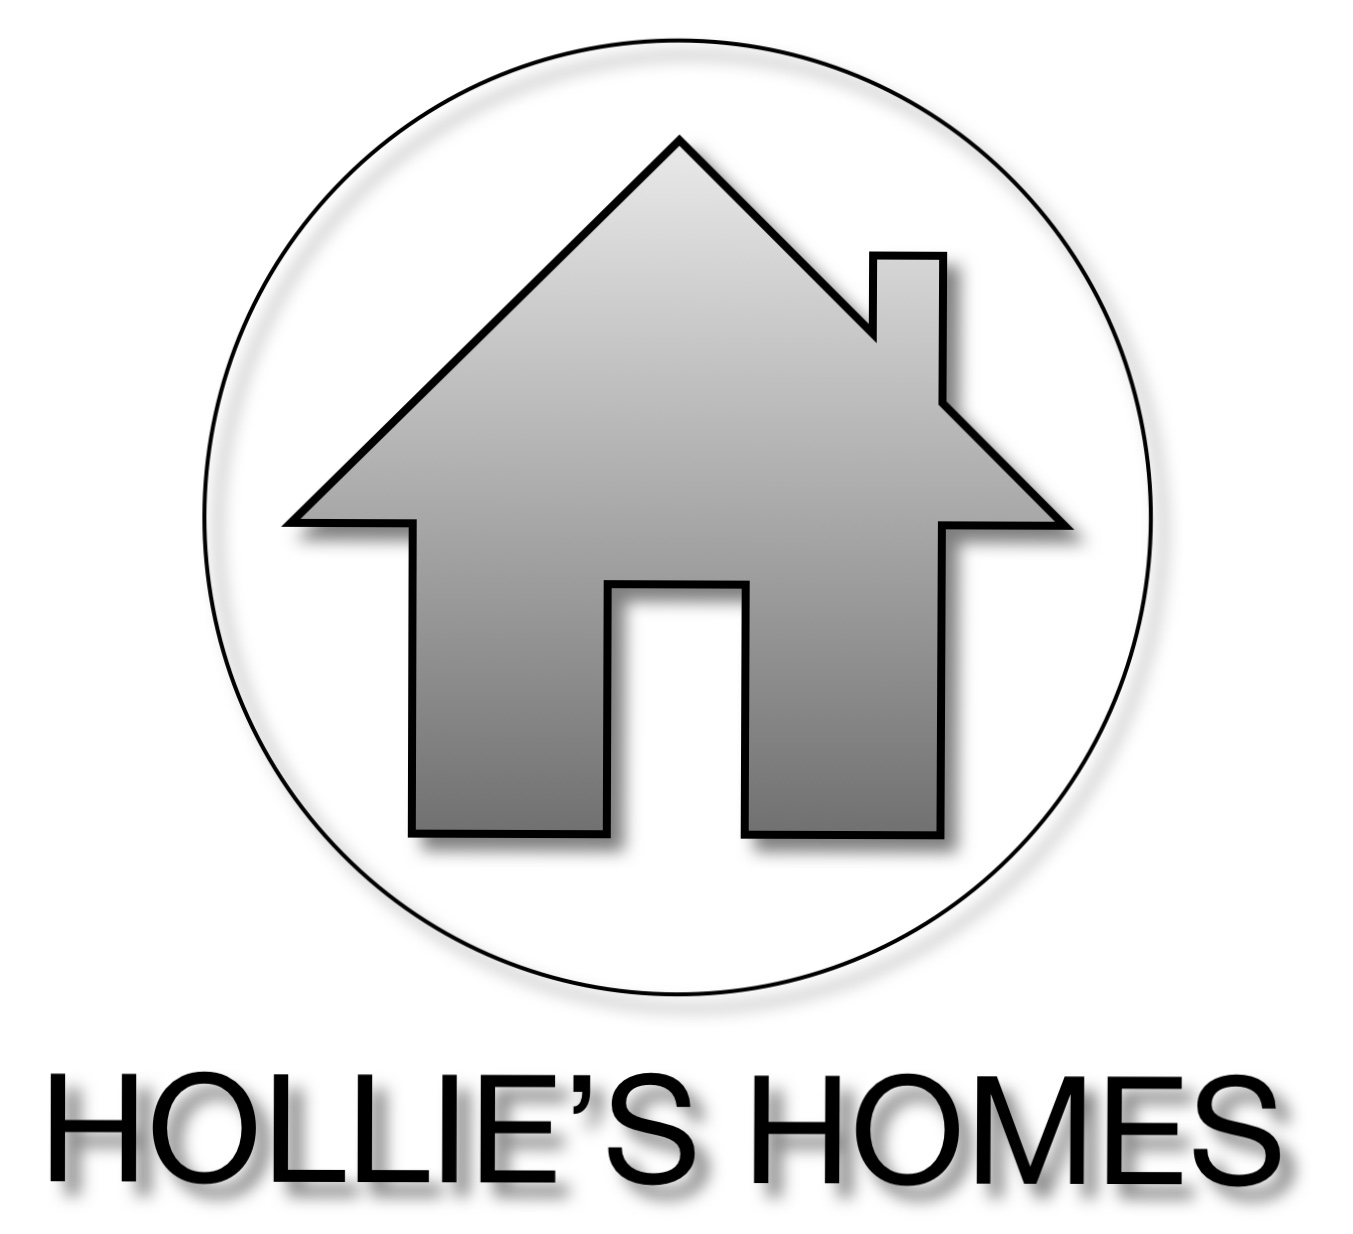 Hollies Homes Electrical Division